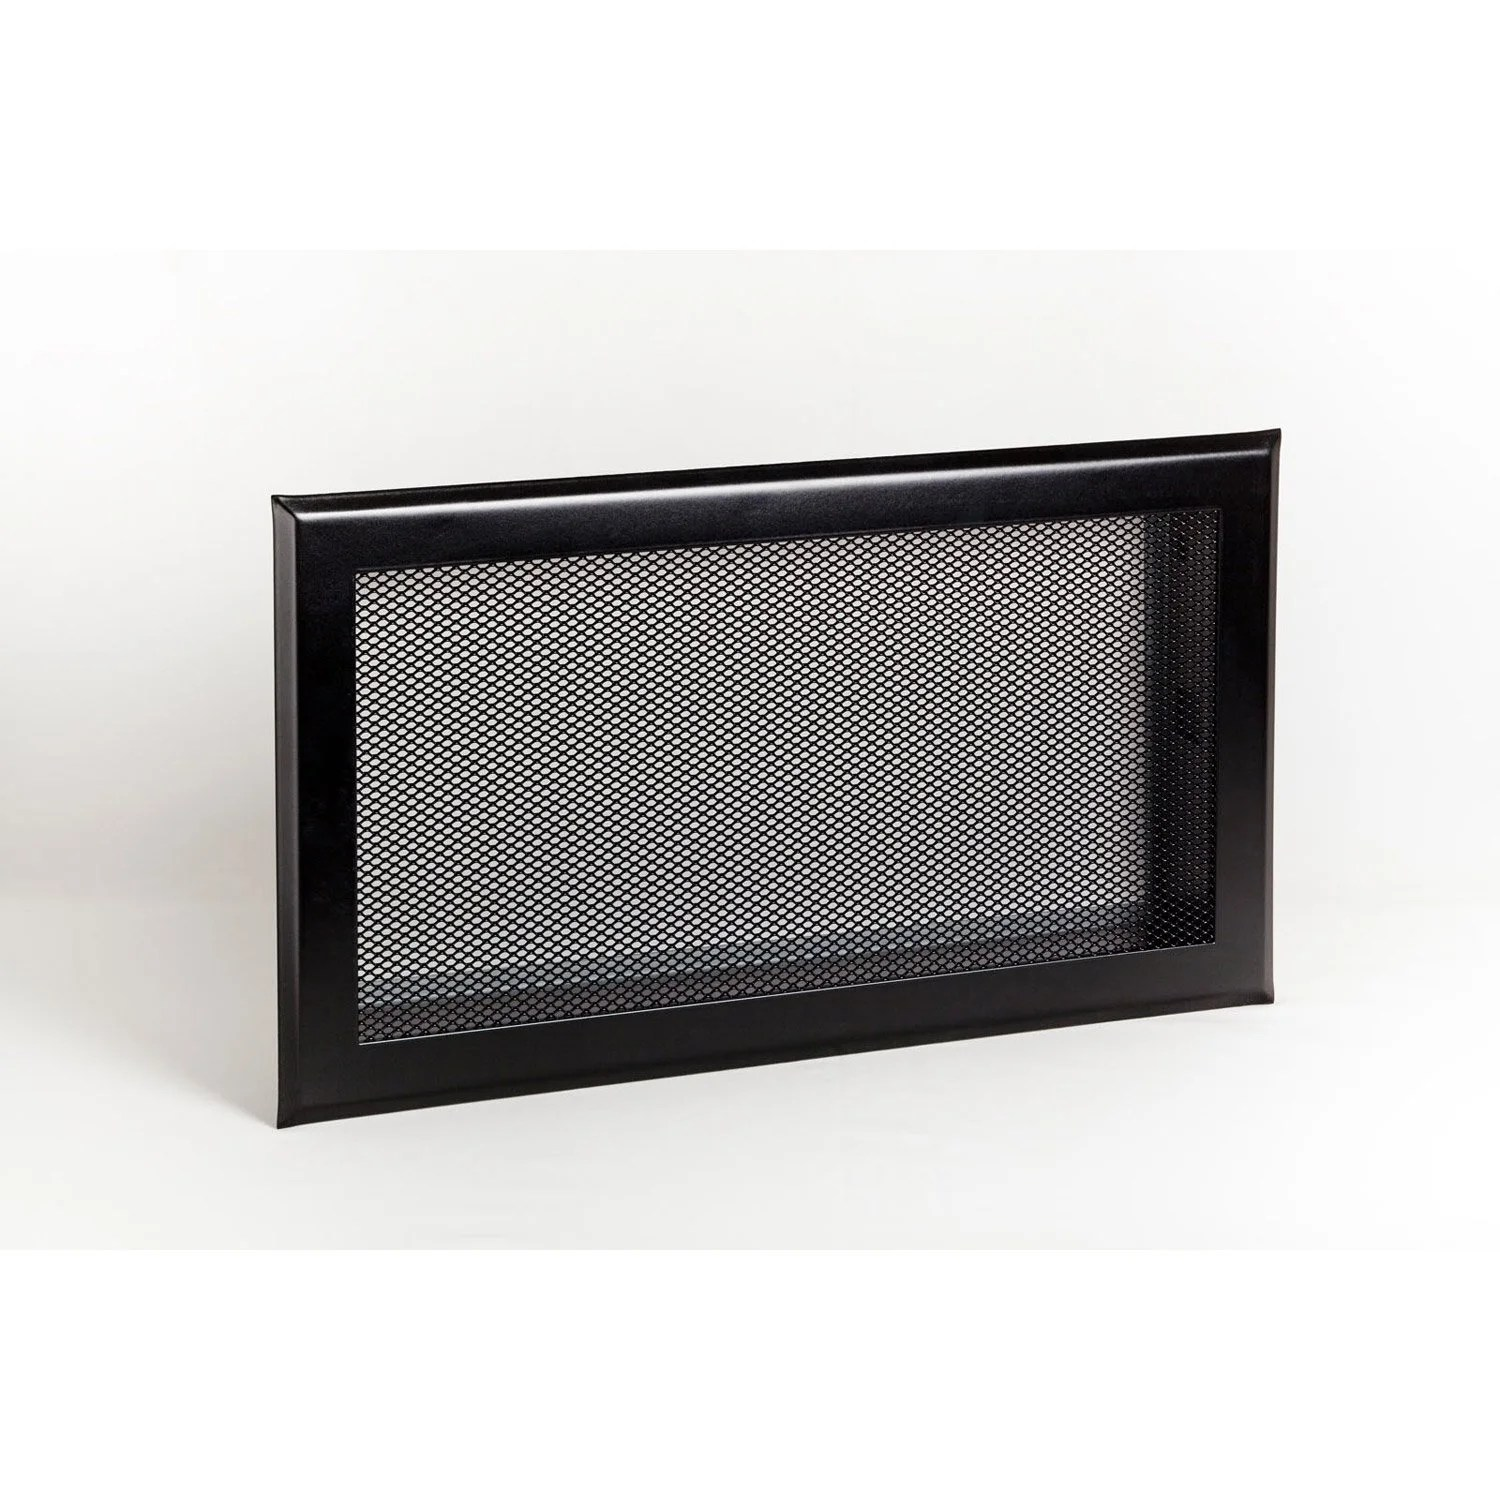 Grille Pour Insert De Cheminee Grille Ventilation Cheminee Leroy Merlin Tableau Isolant